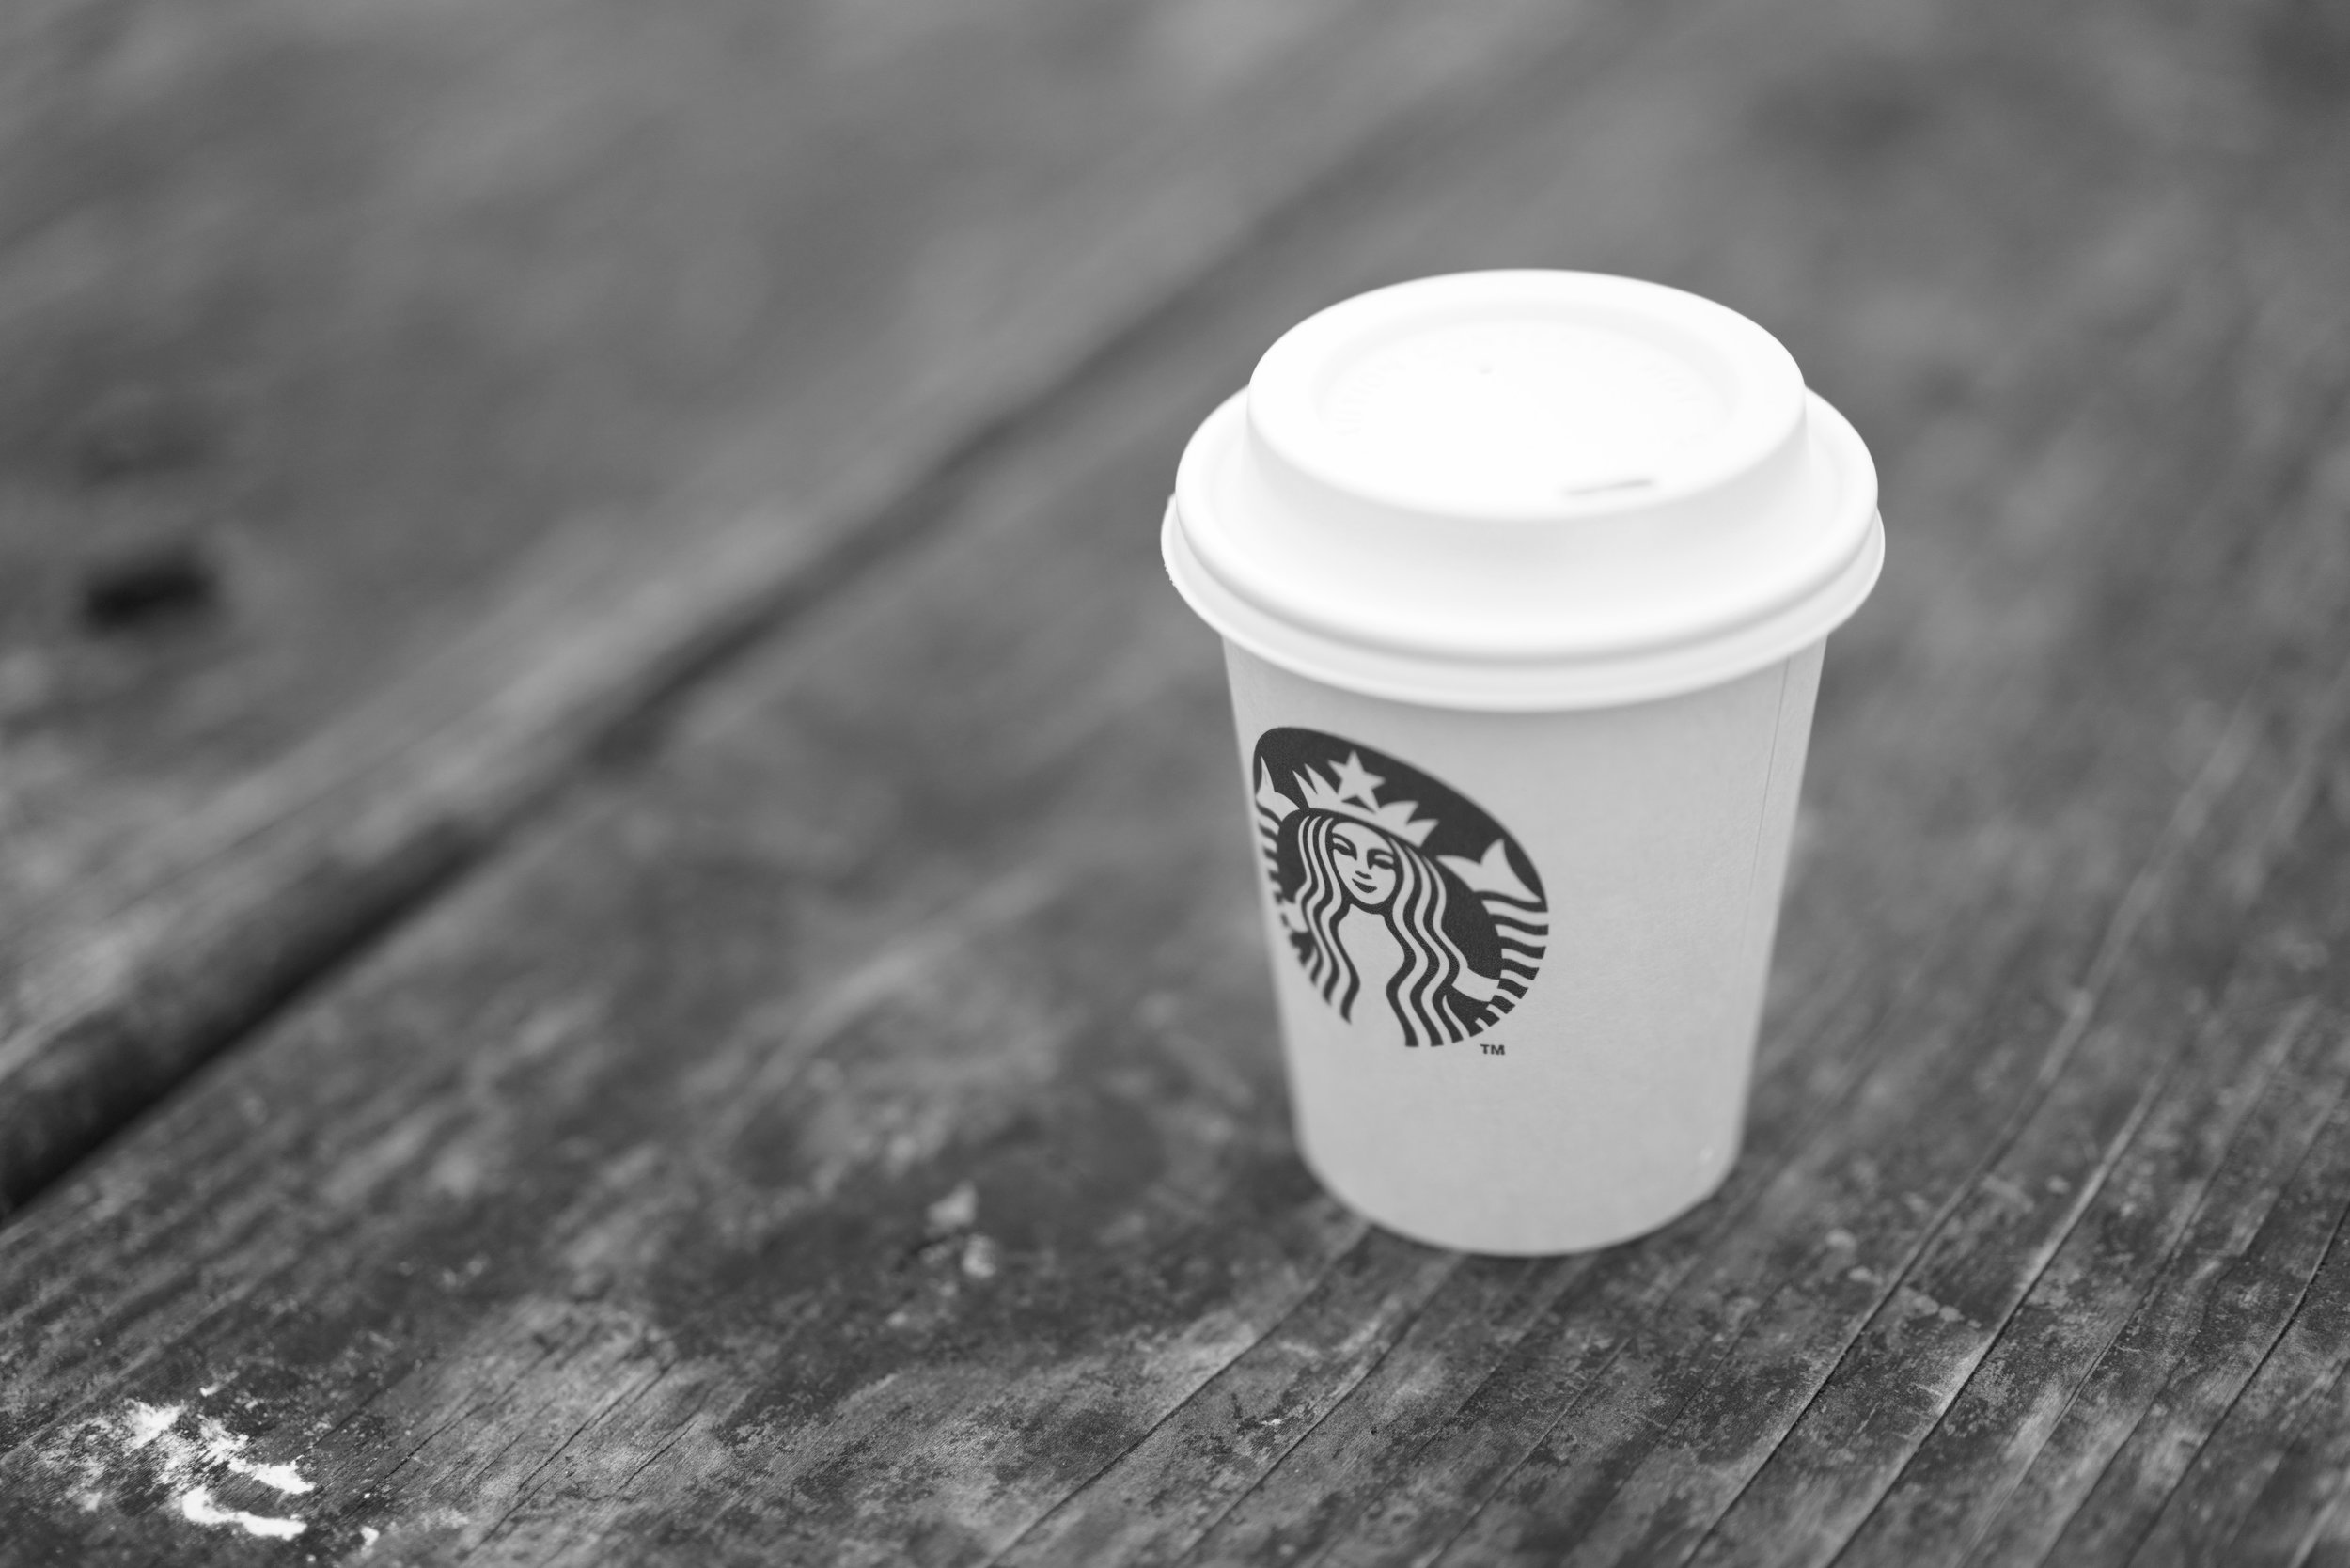 A white Starbucks takeaway cup sits on a wooden outdoor table